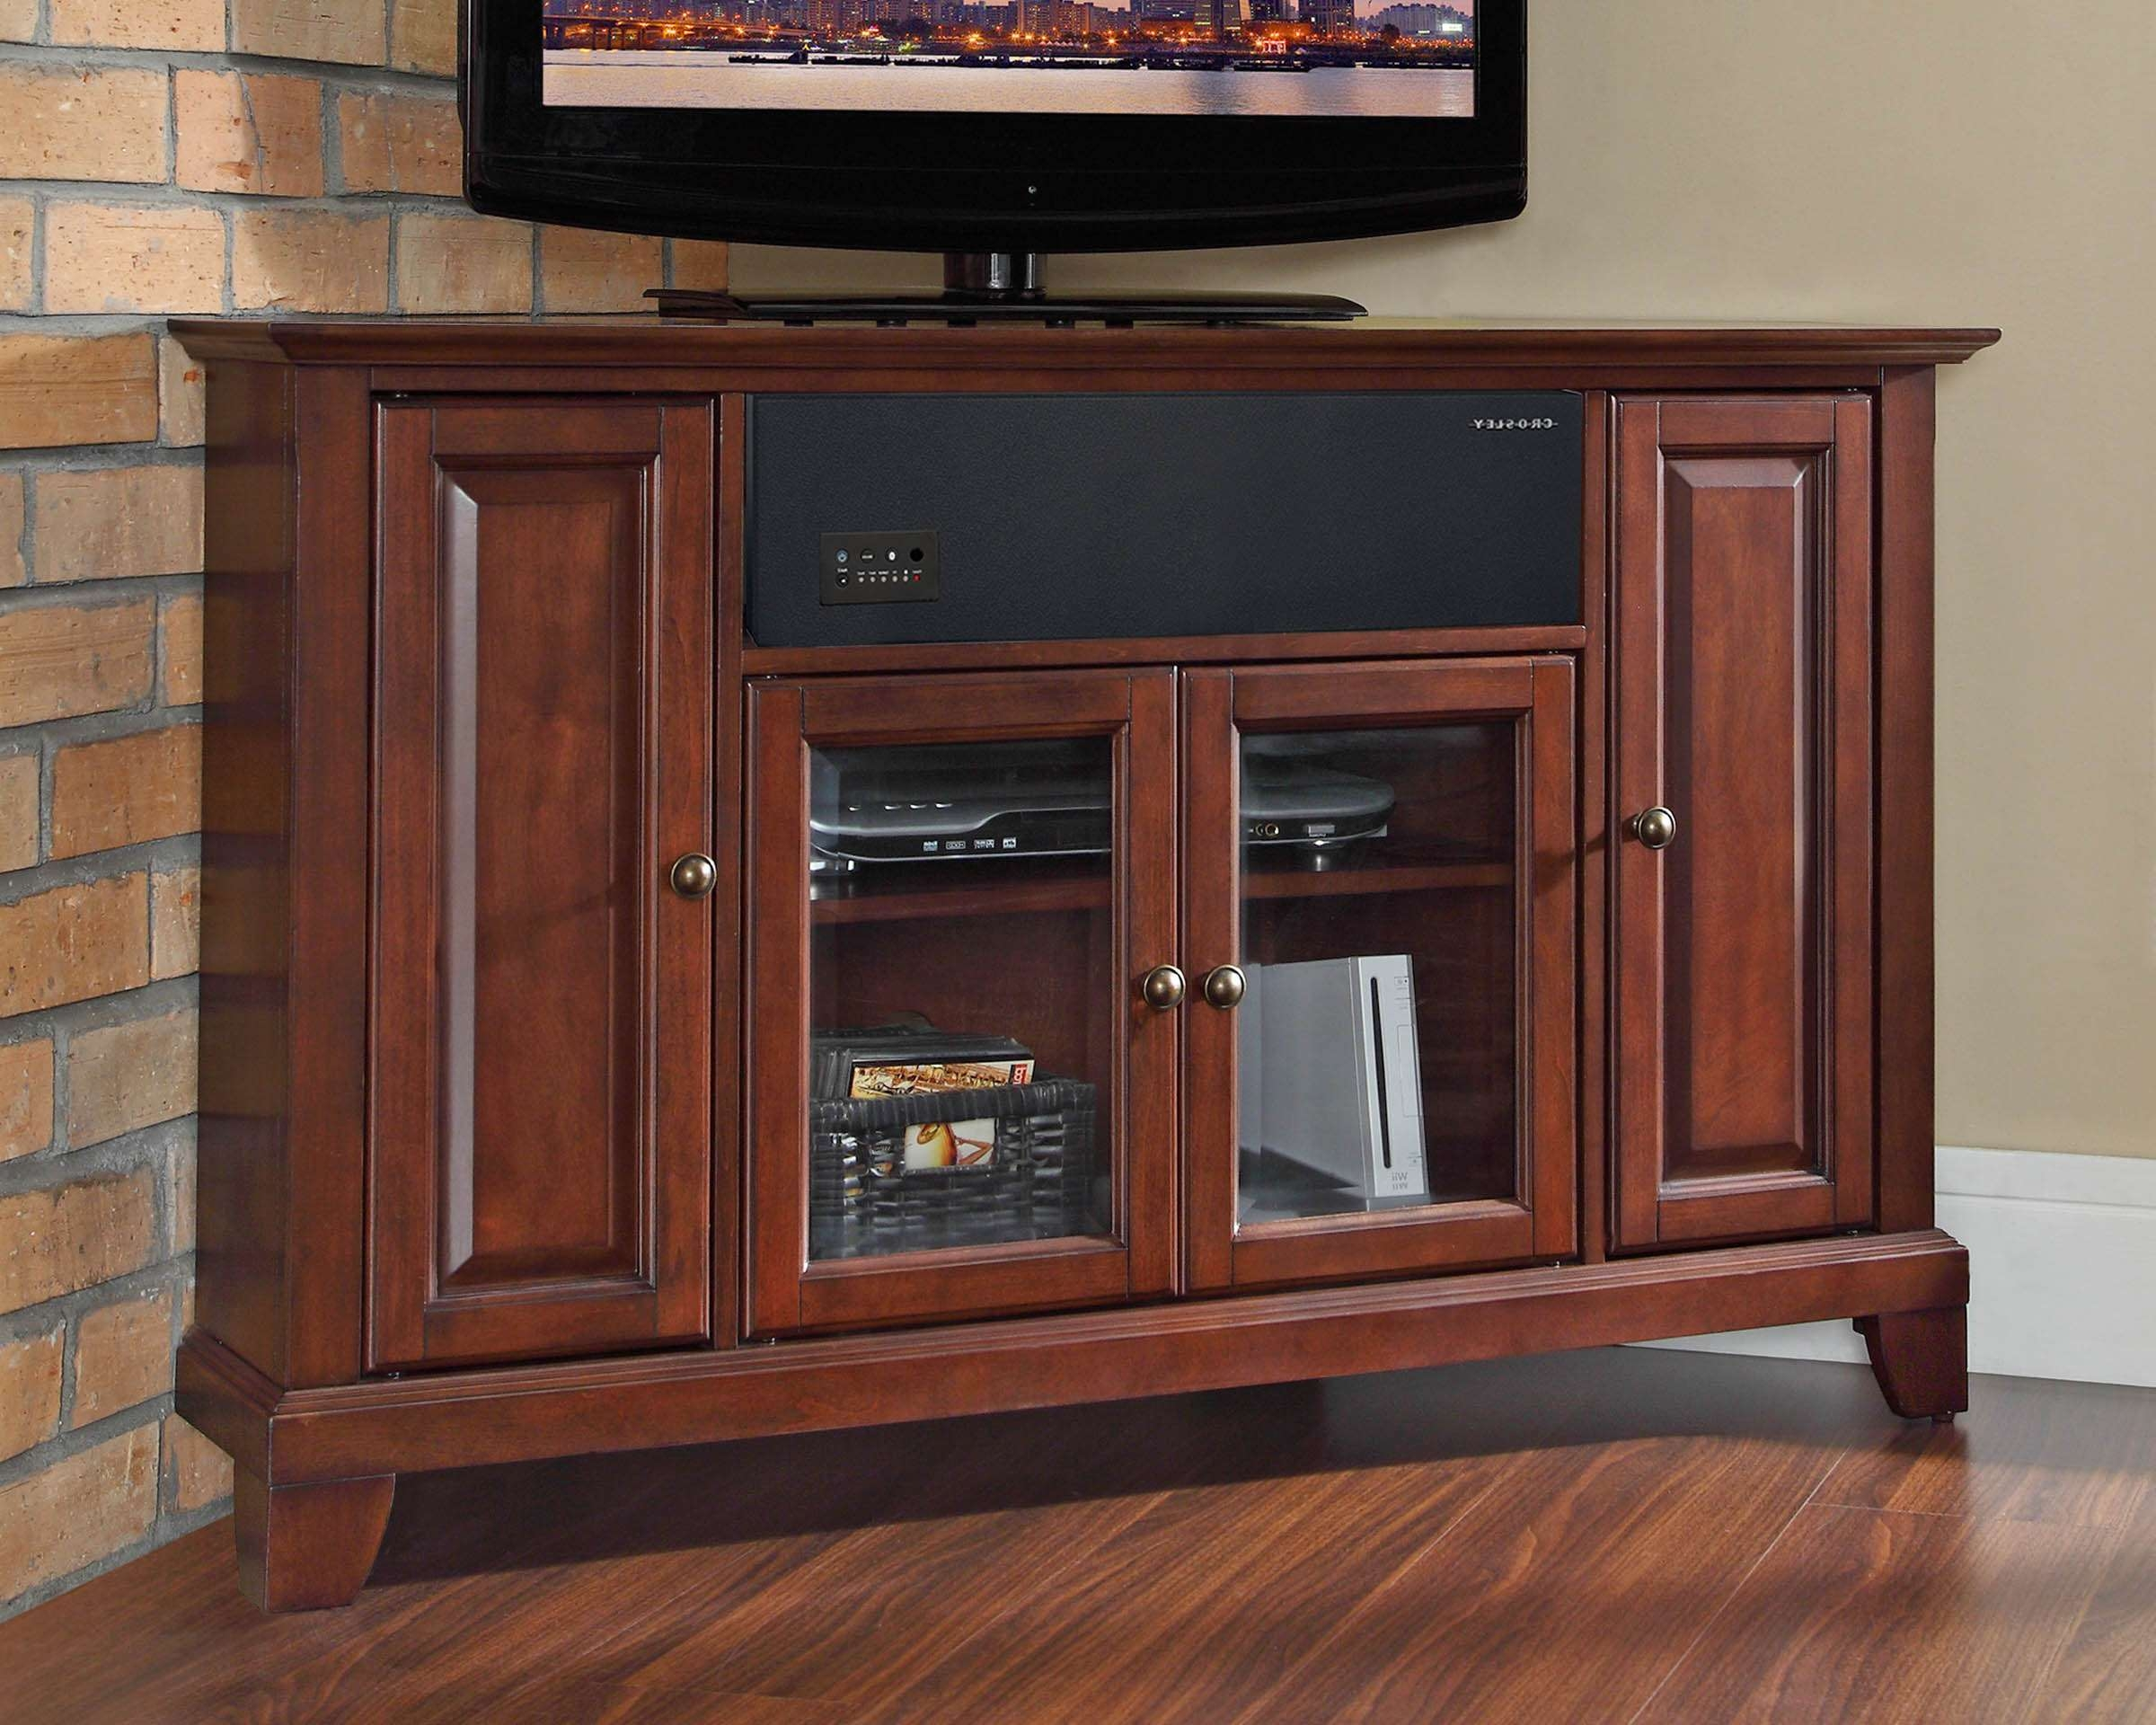 Crosley Furniture Newport 48 Inch Corner Aroundsound Tv Stand In Inside Mahogany Tv Stands Furniture (View 6 of 15)